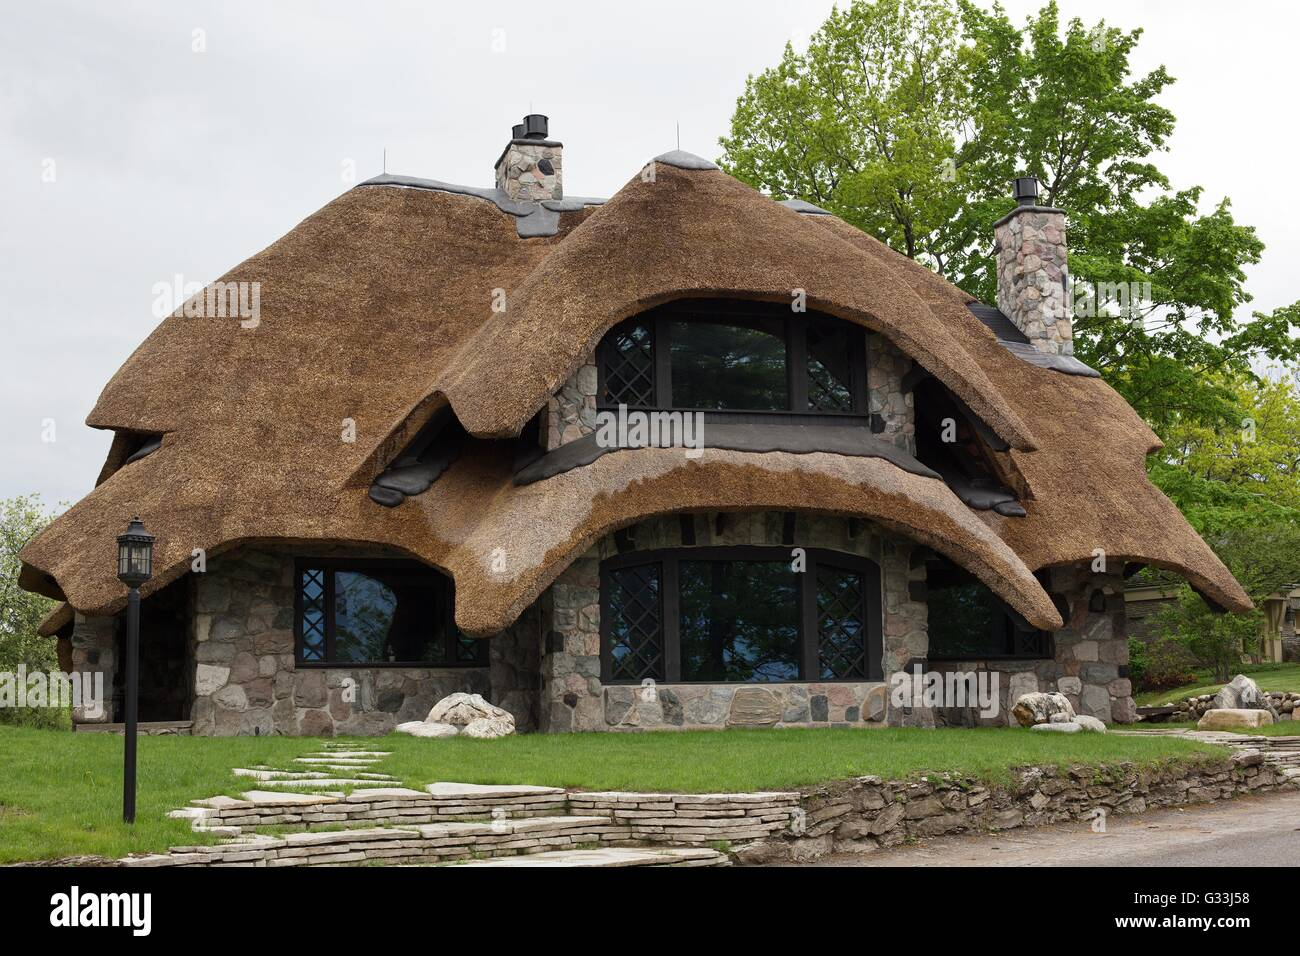 A mushroom house in Charlevoix, Michigan, USA, designed and built by Earl Young. - Stock Image